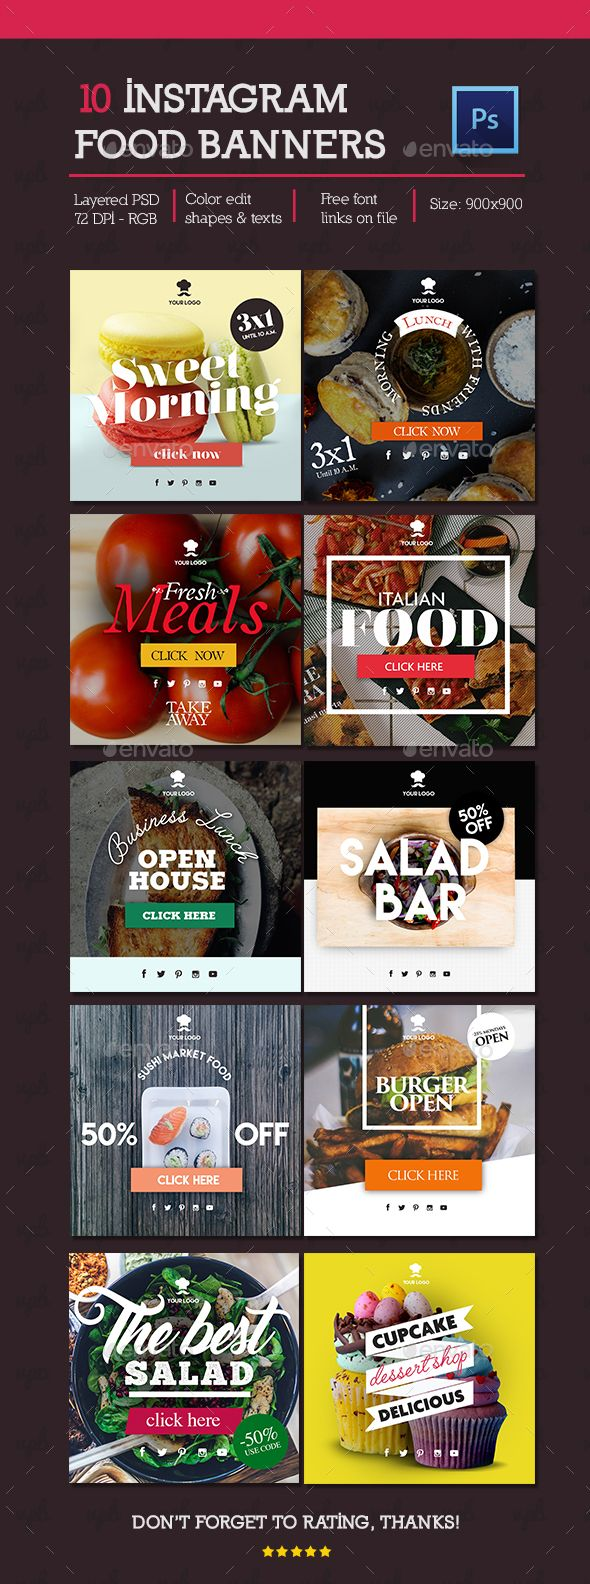 10 Instagram Food Banners — Photoshop PSD #food #shop • Available here → https://graphicriver.net/item/10-instagram-food-banners/16210566?ref=pxcr